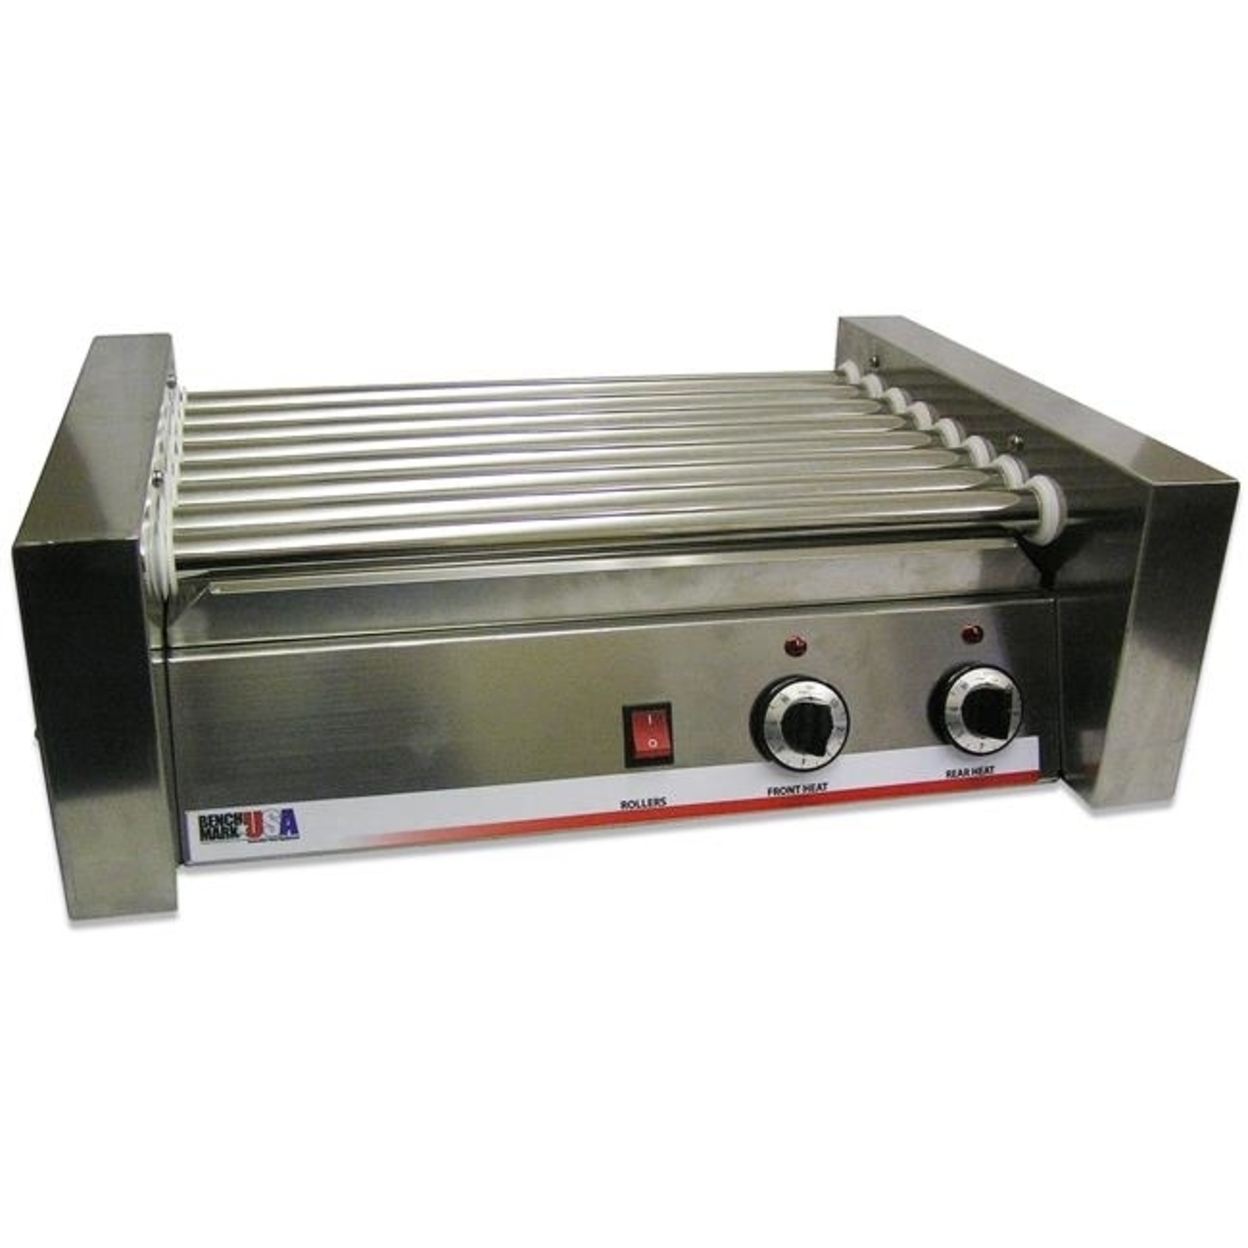 Benchmark USA 62020 20 Dog Roller Grill 5a3bee9be224615ab35474b3